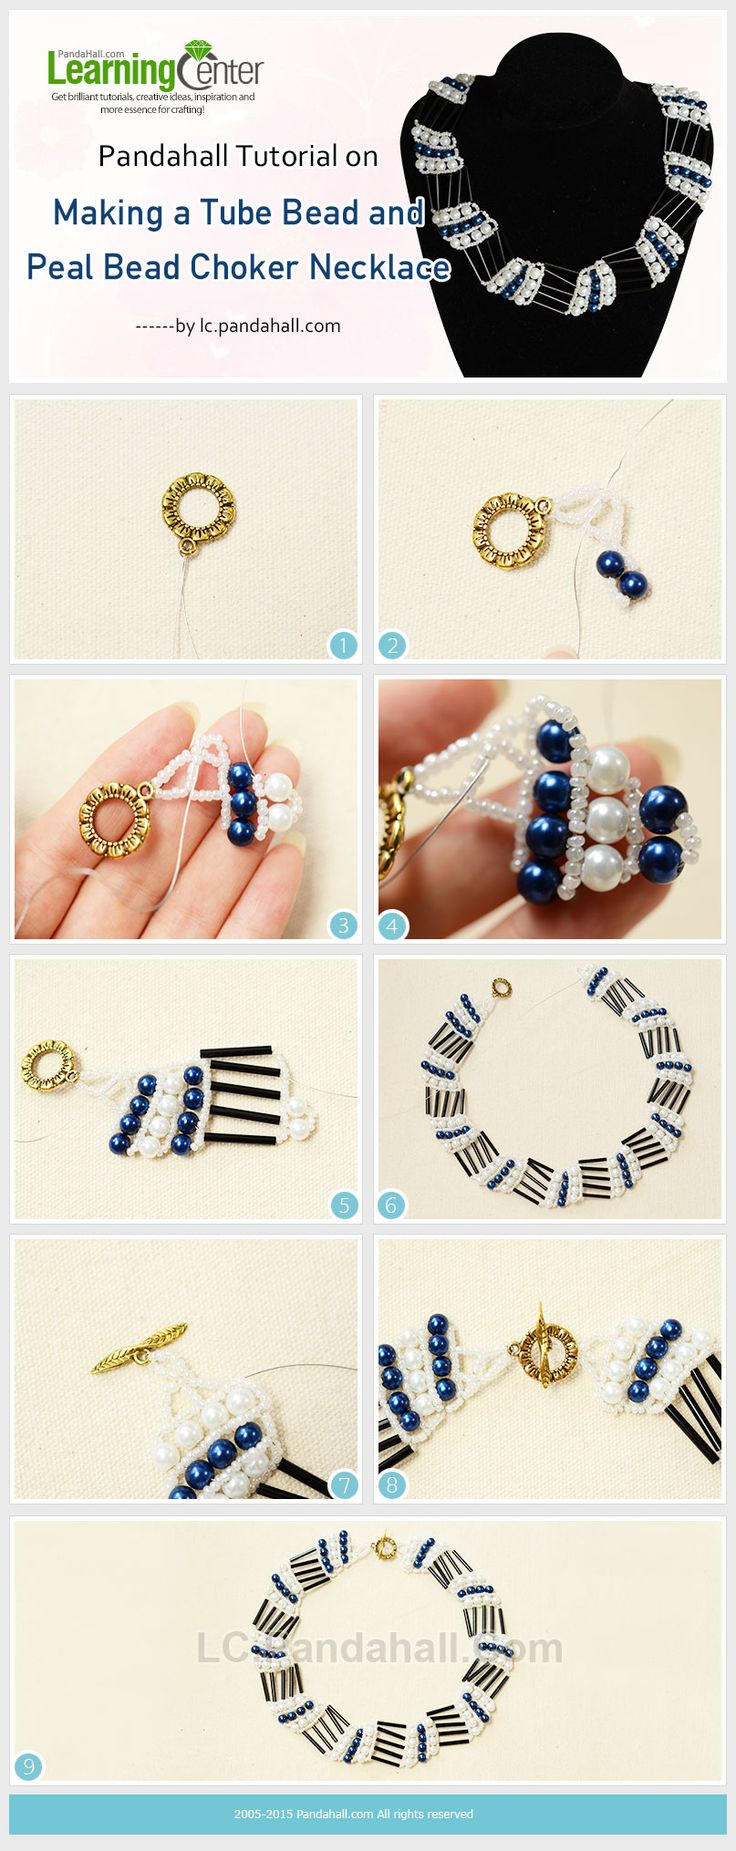 Making-a-Tube-Bead-and-Peal-Bead-Choker-Necklace